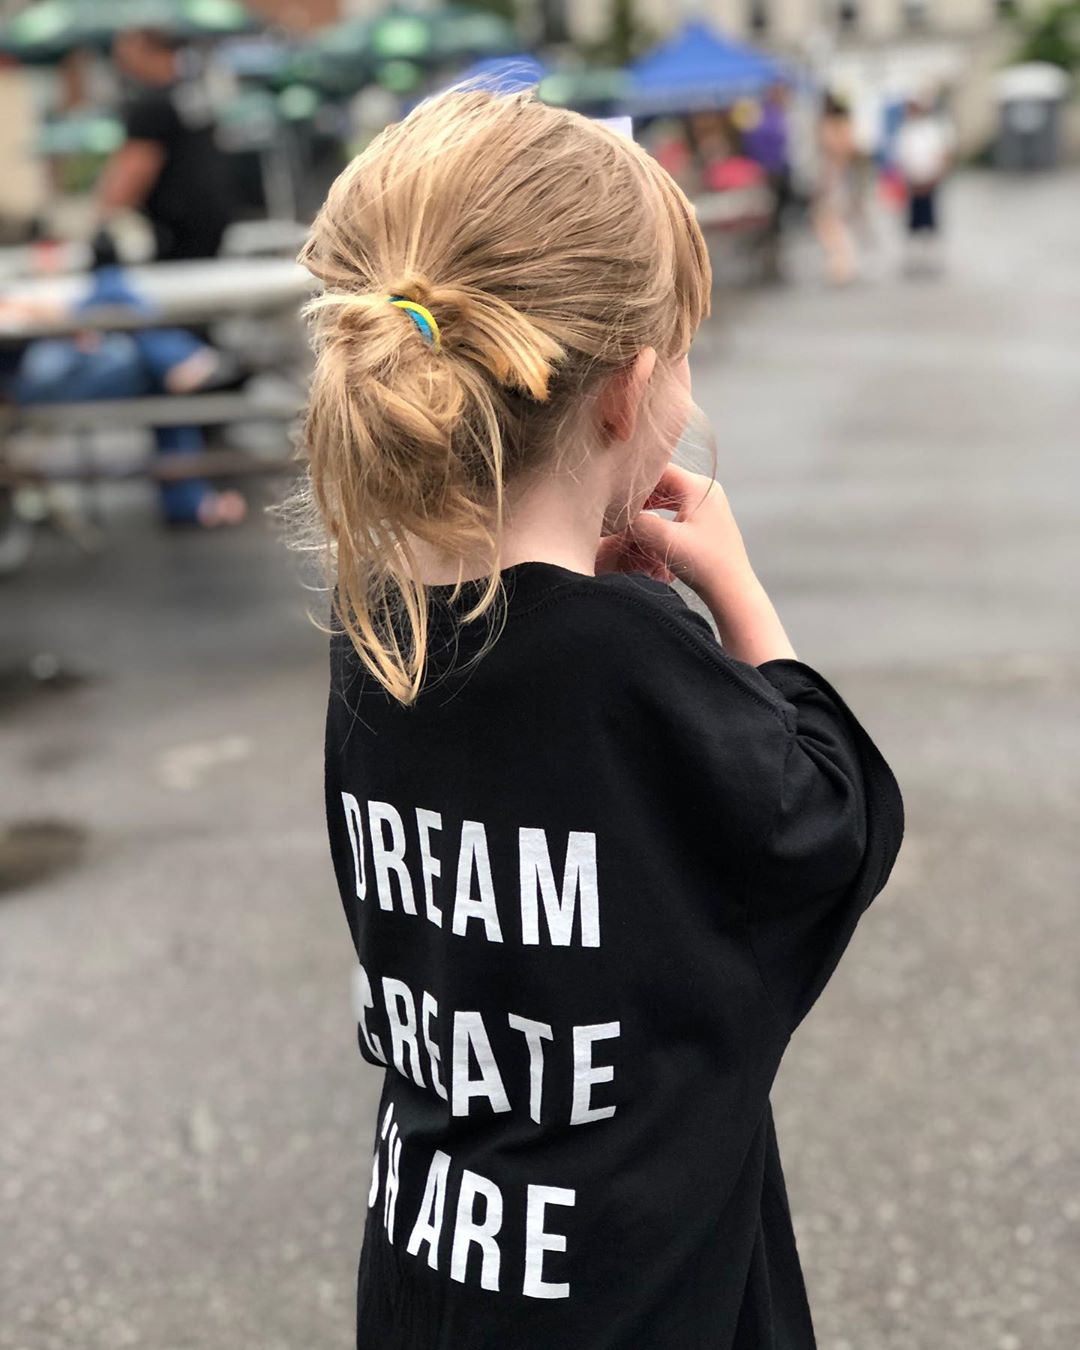 Dream Create Share @cbridgeartsfest #cbridge